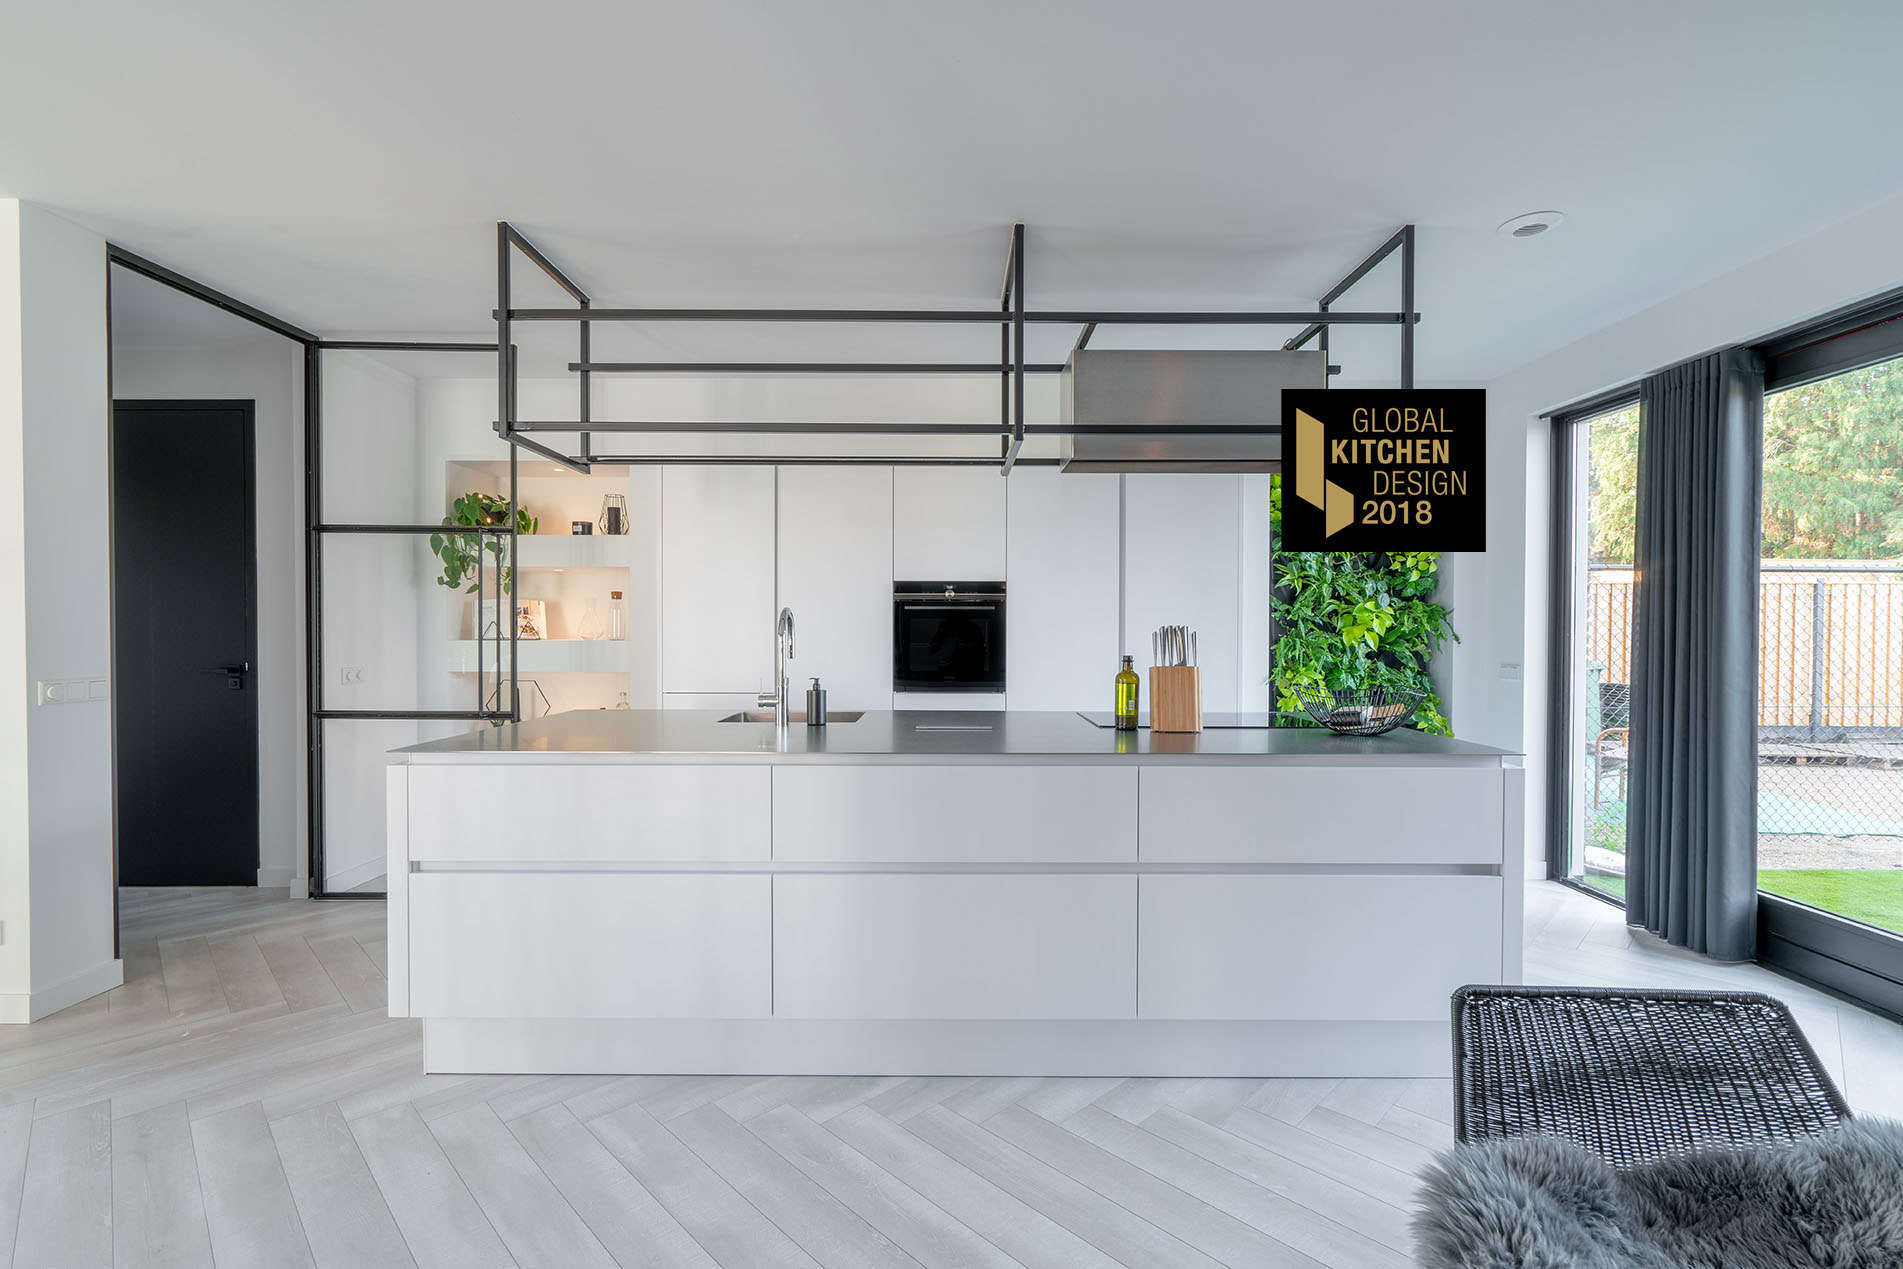 Global kitchen design award